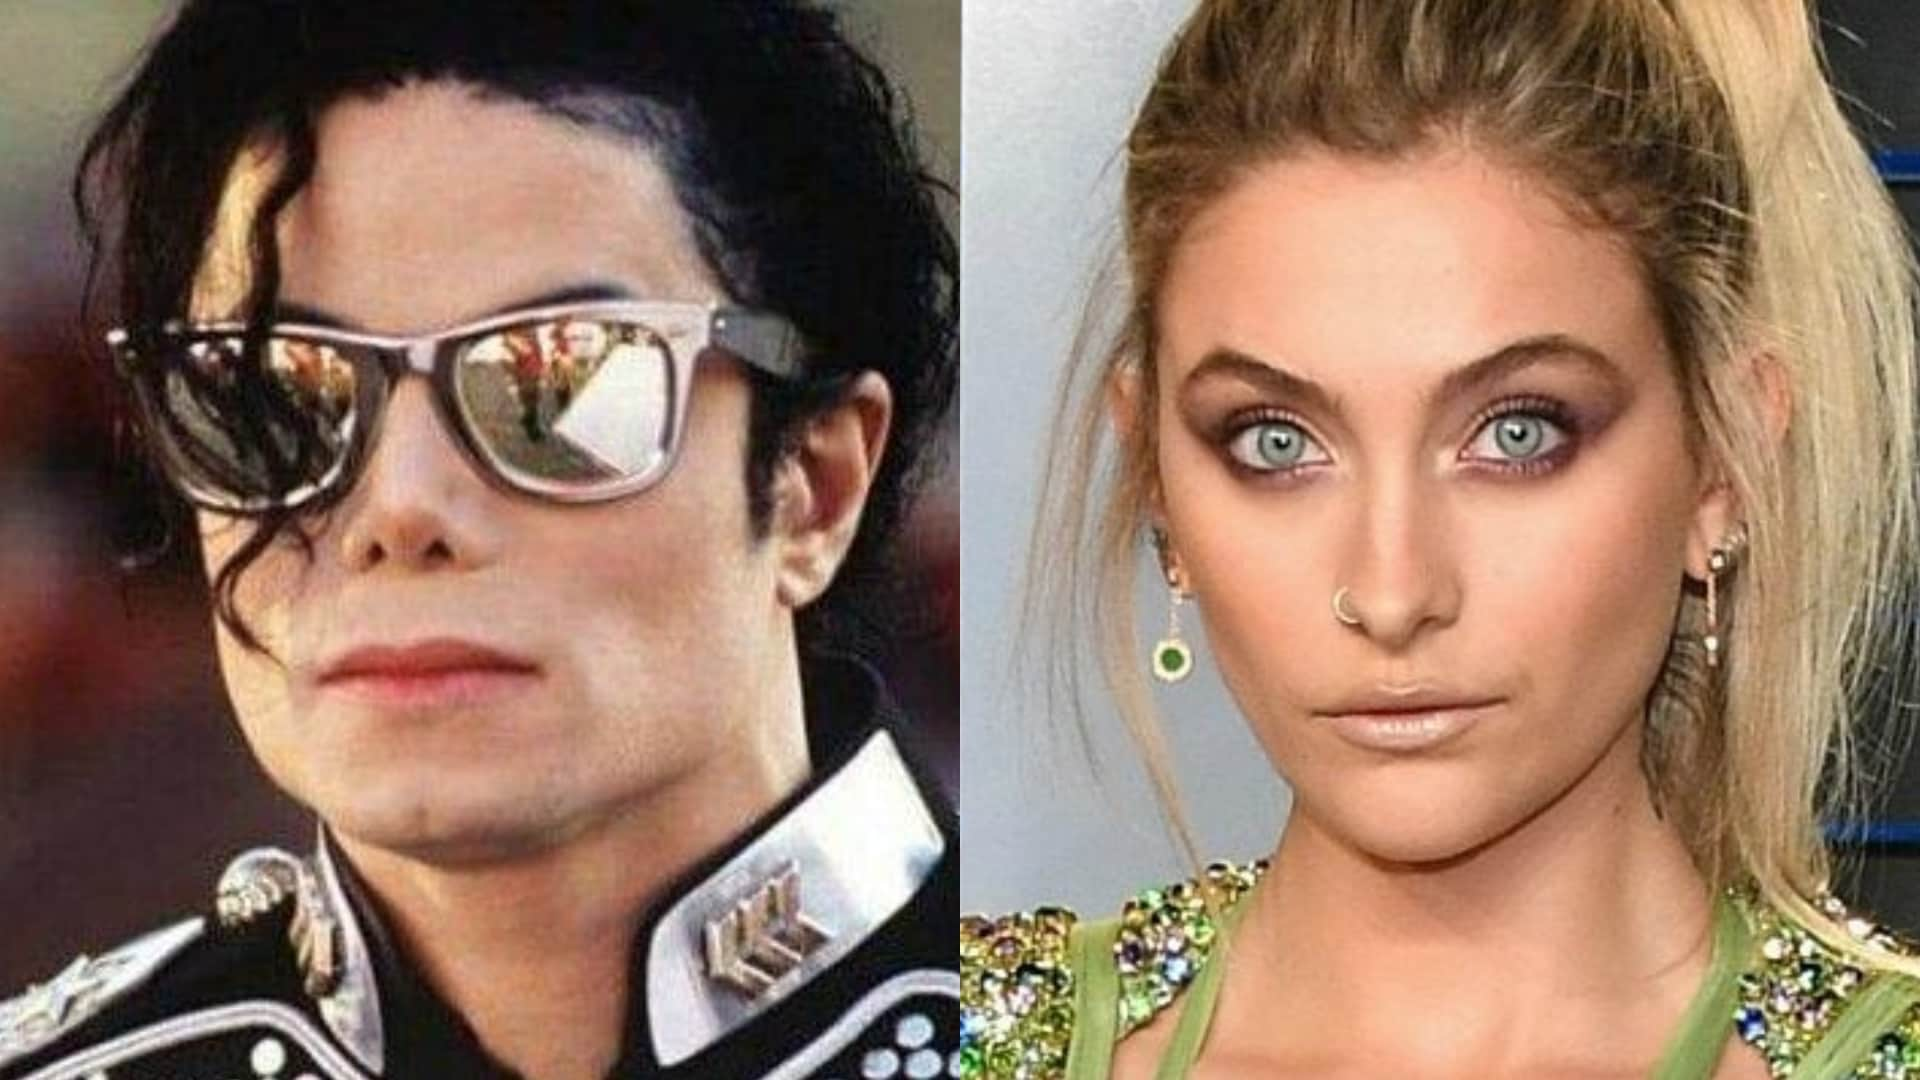 Paris Jackson says King of Pop caught on 'pretty quickly' to her sexuality